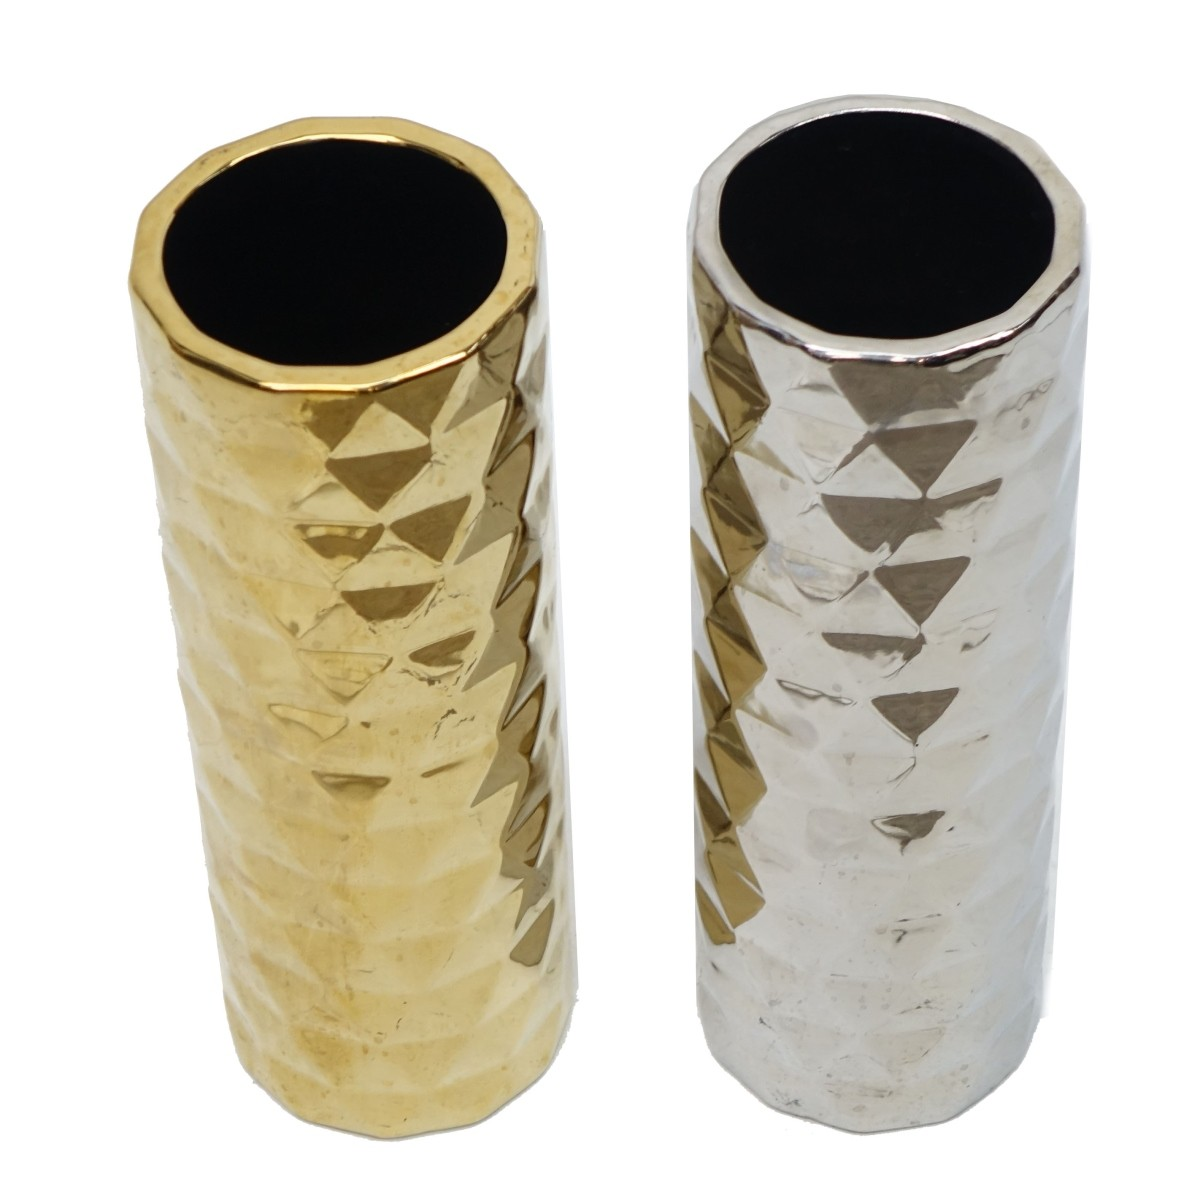 Pair of Modern Decorative Vases